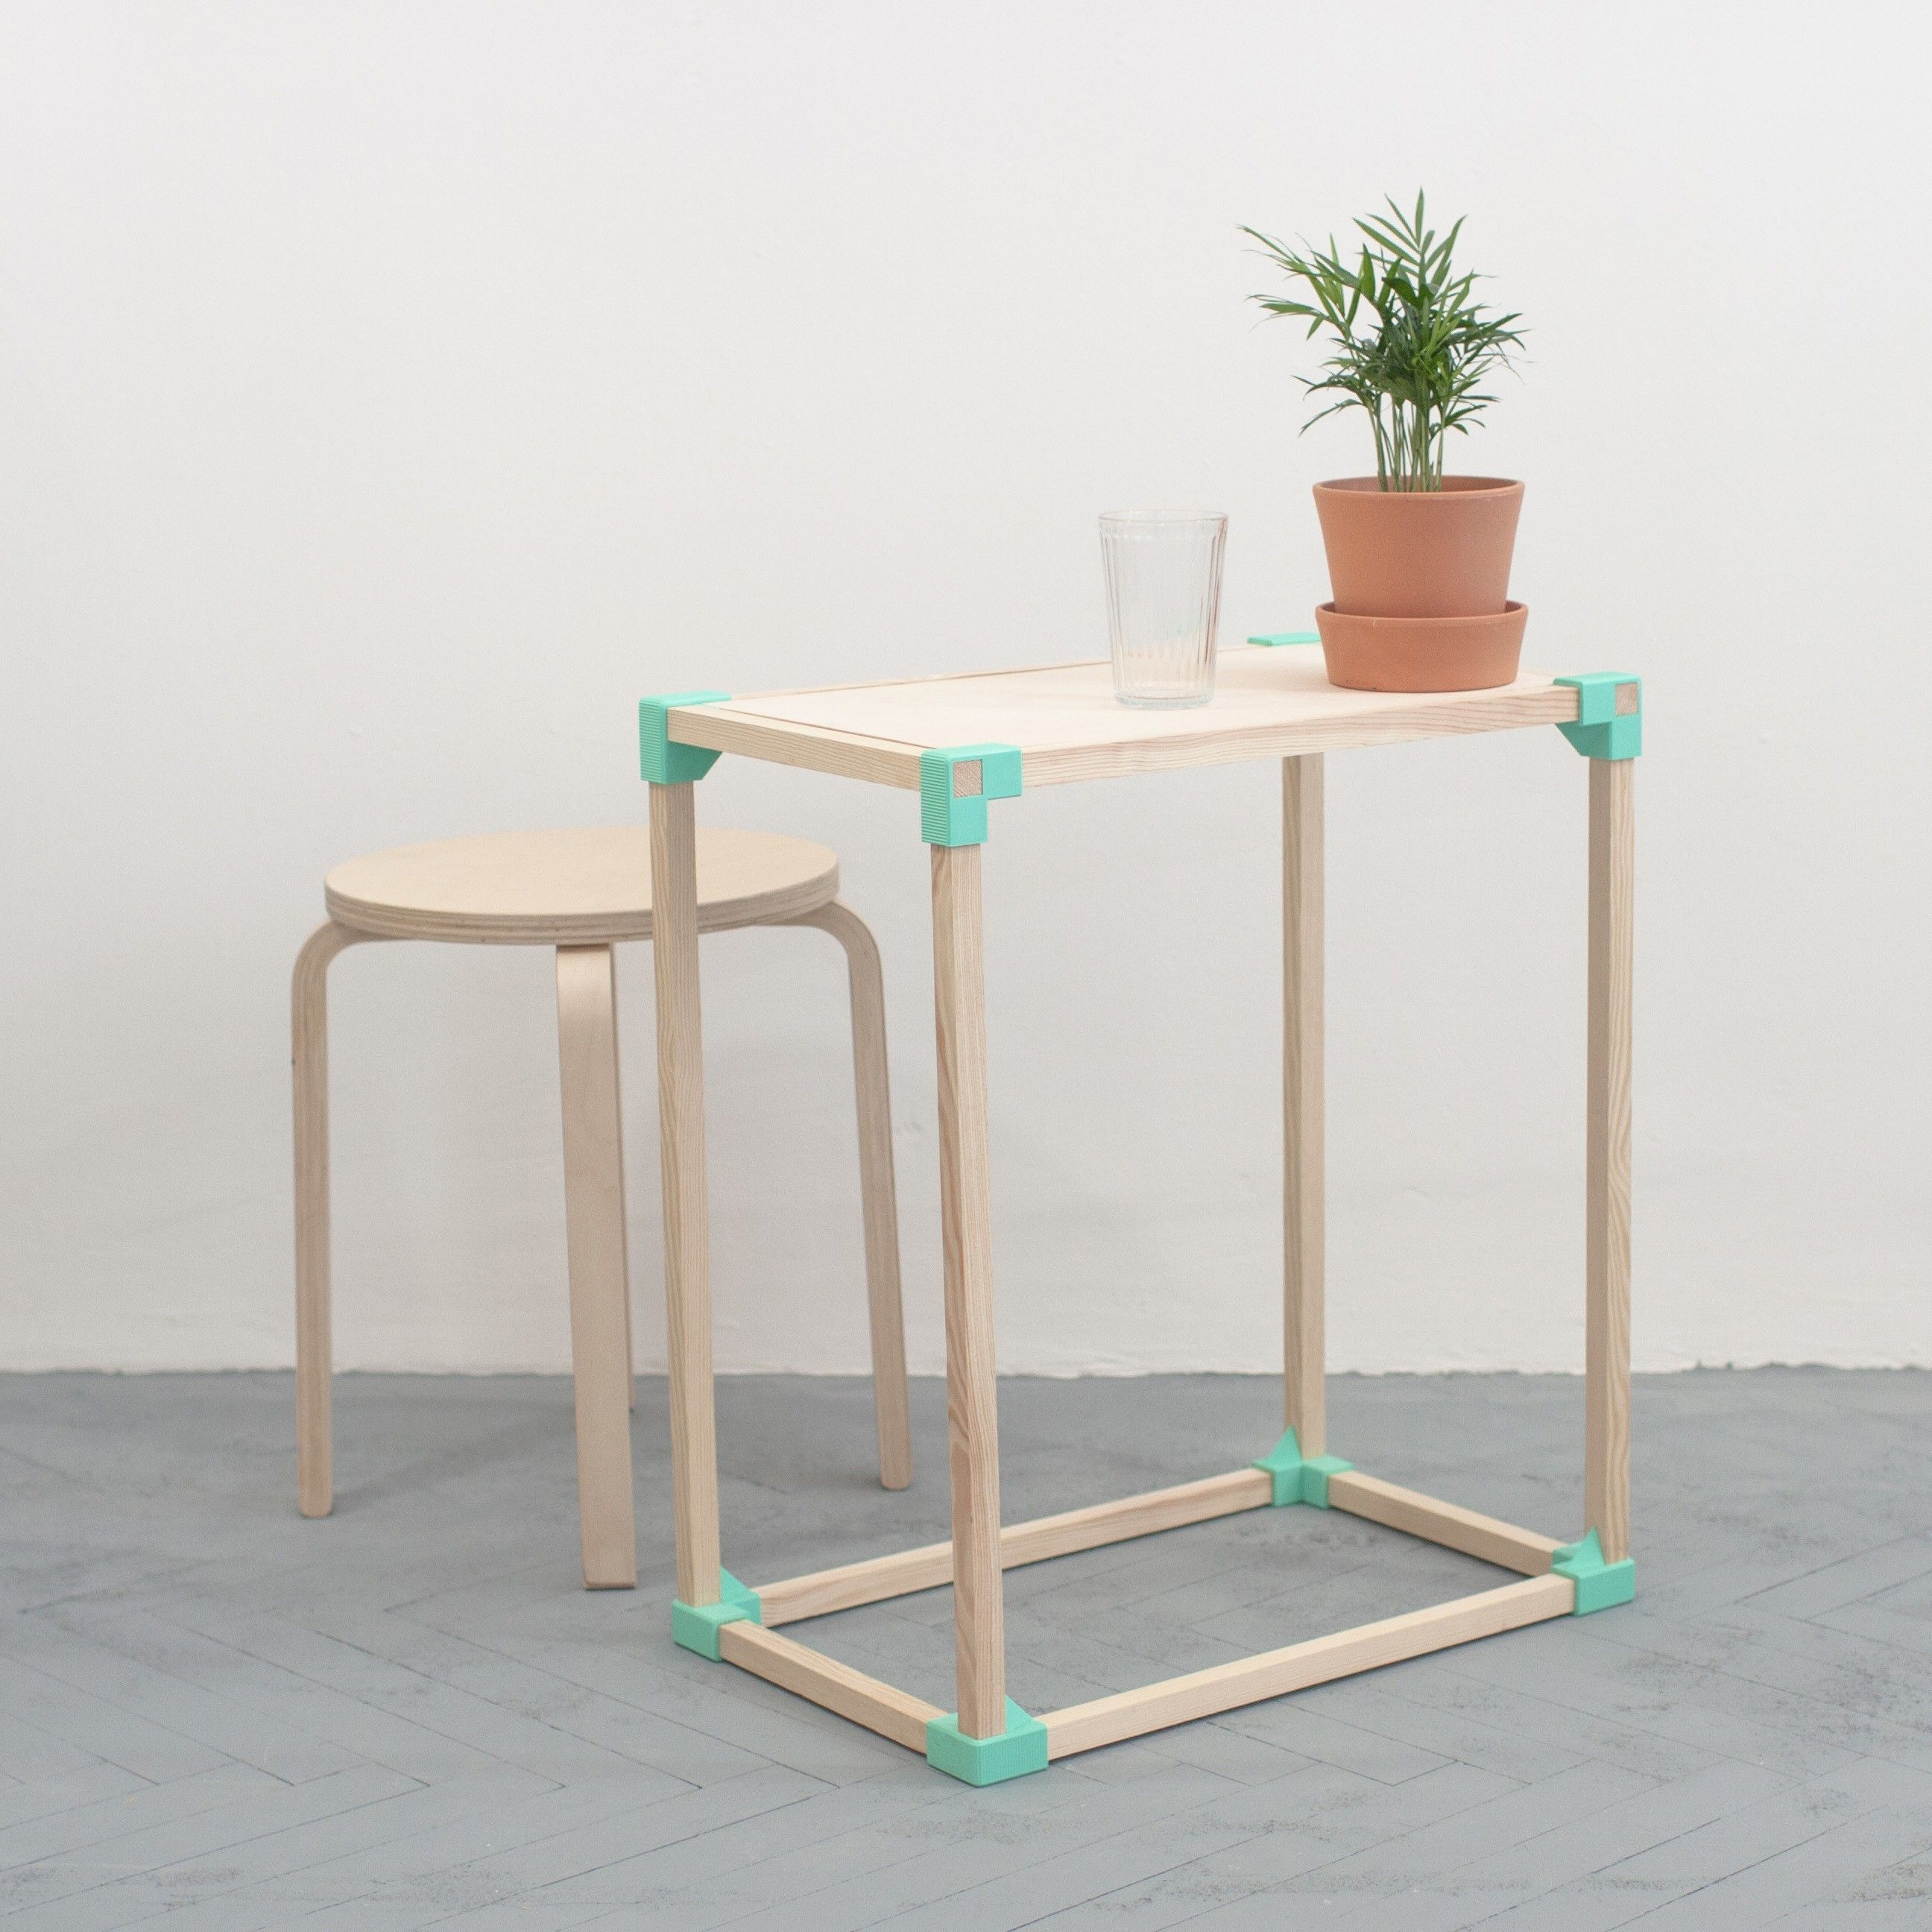 The SMF 0.2 Furniture Project Standing For Self Made